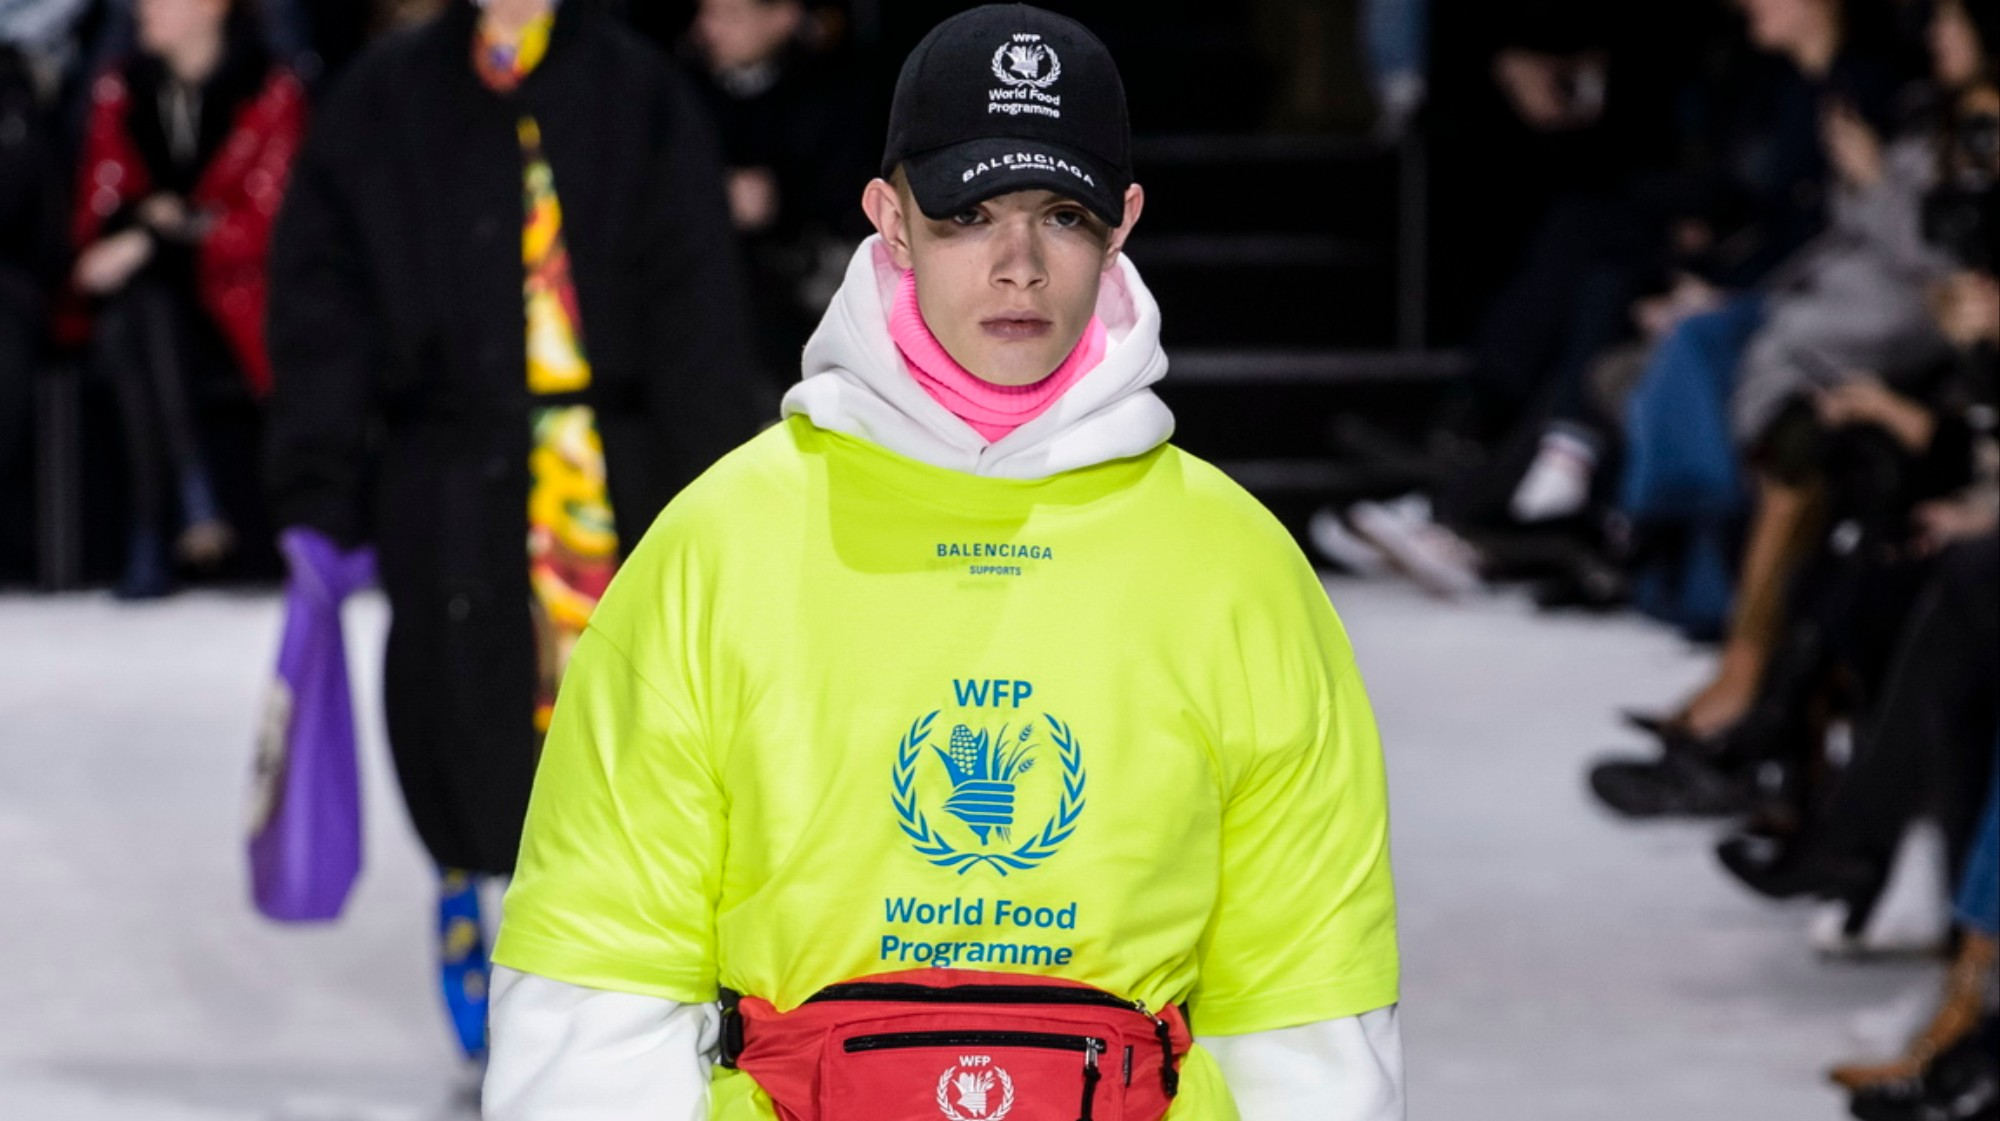 Balenciaga Partner With The World Food Programme To Draw Attention To The Recent Spike In Global Hunger I D